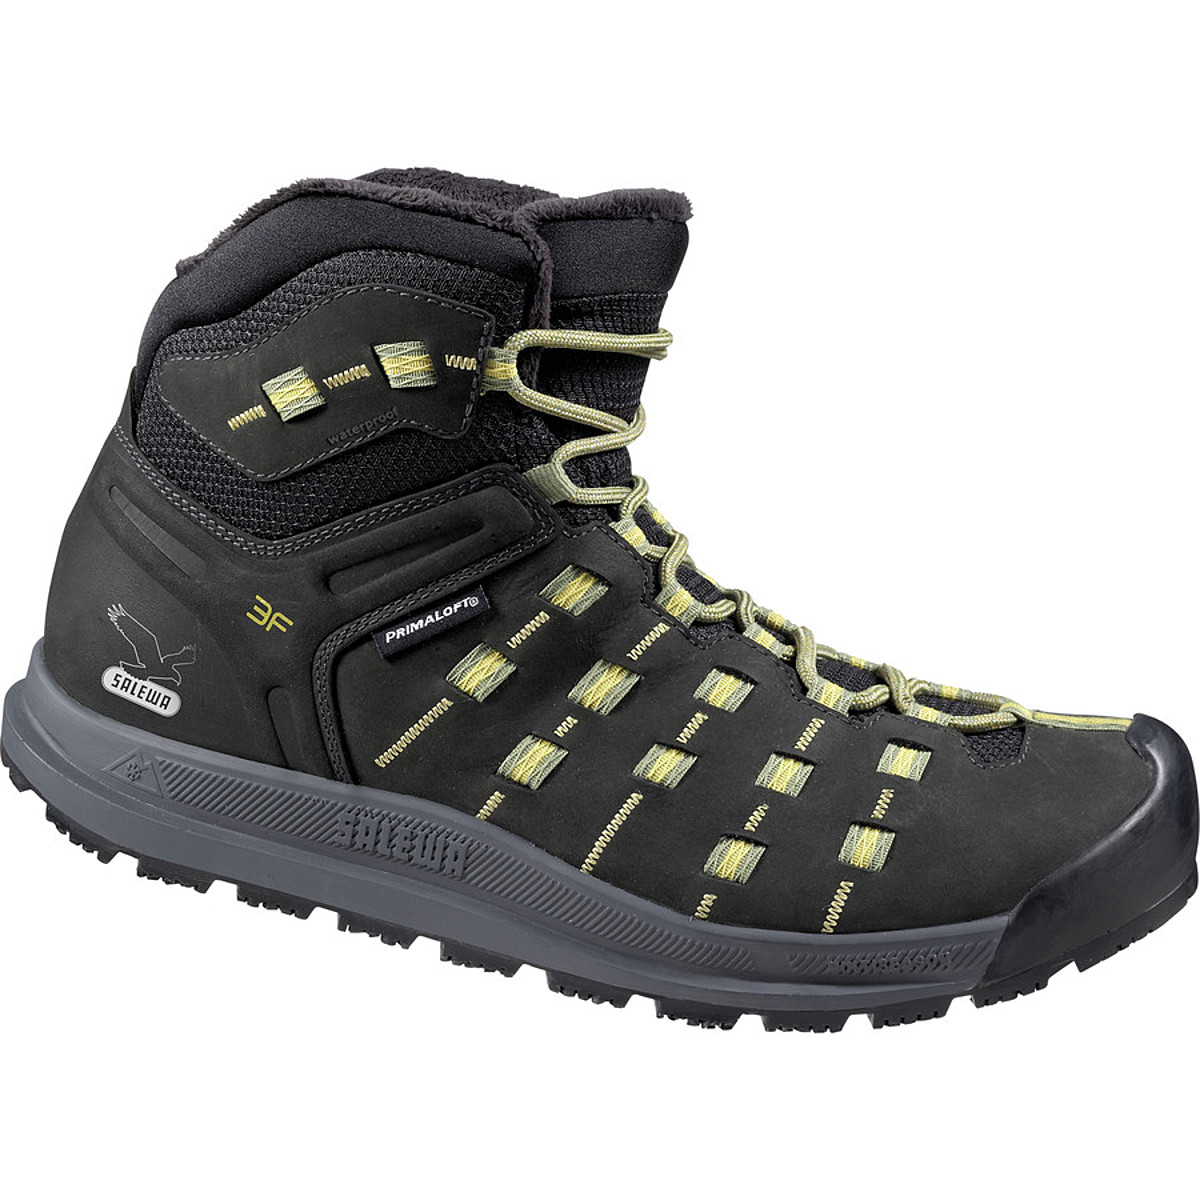 Salewa Capsico Insulated Mid Boot